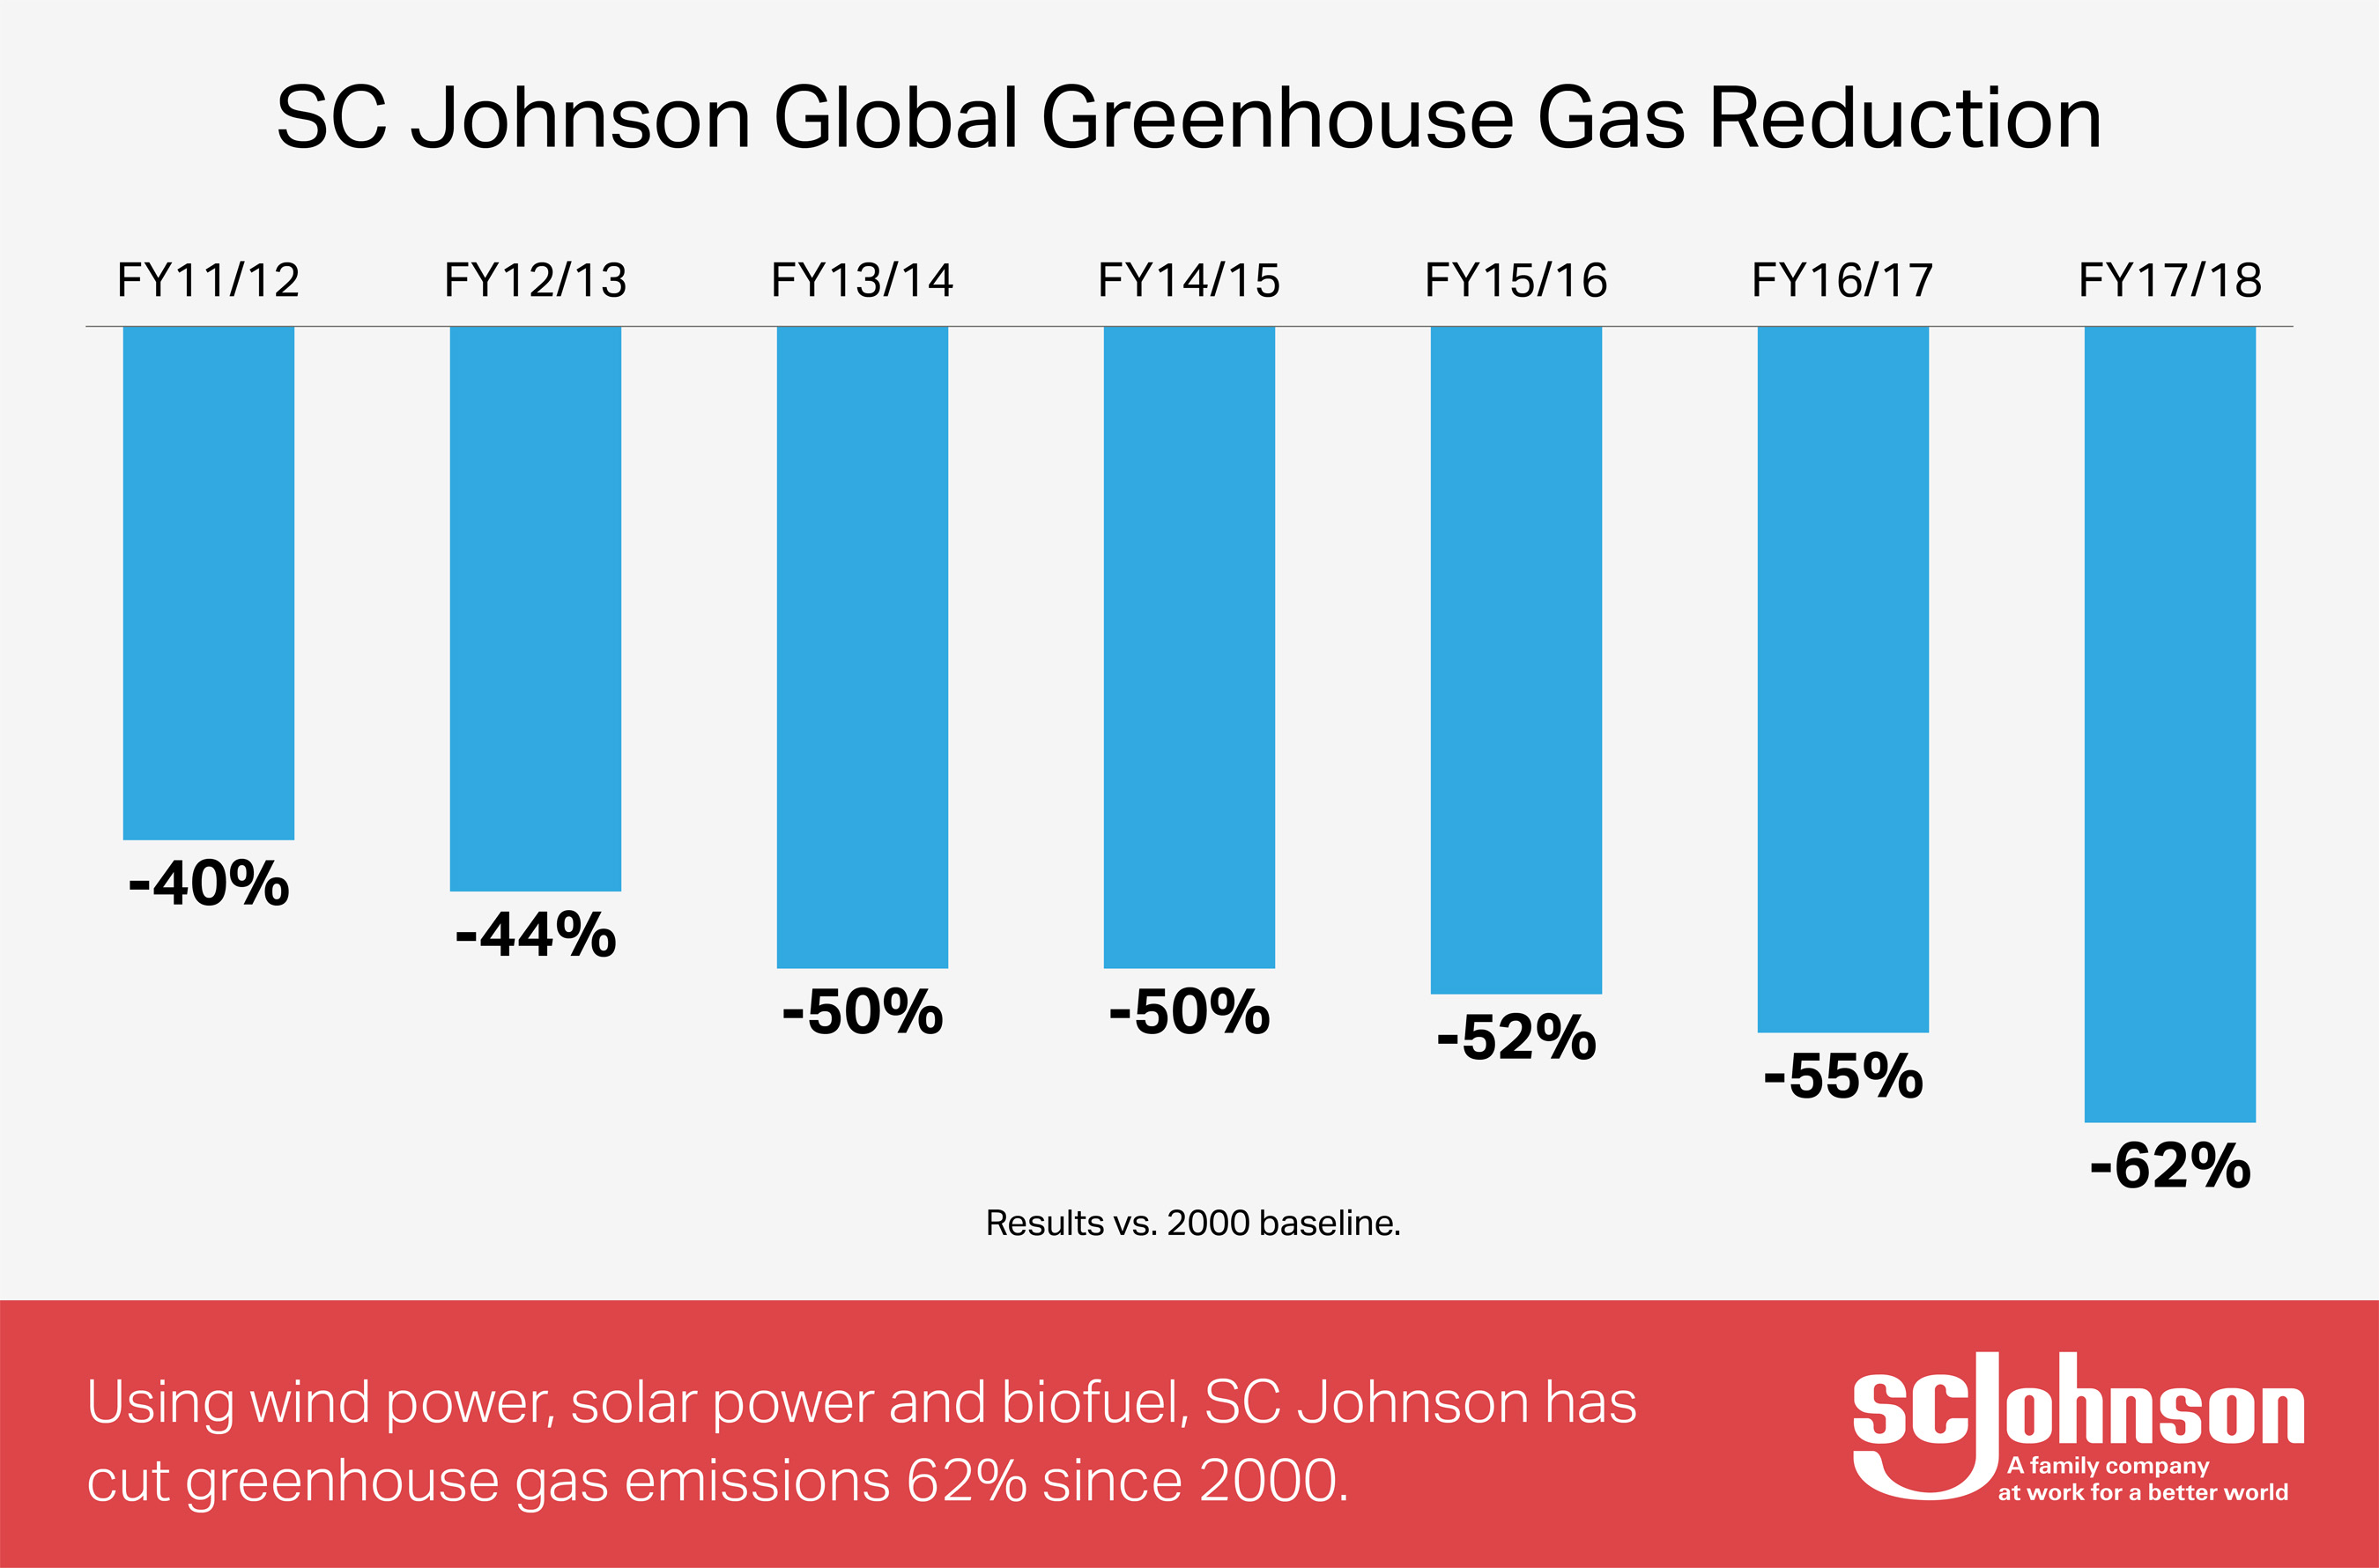 In 2017/18, SC Johnson achieved a 62% reduction in greenhouse gas emissions vs 2000 baseline.